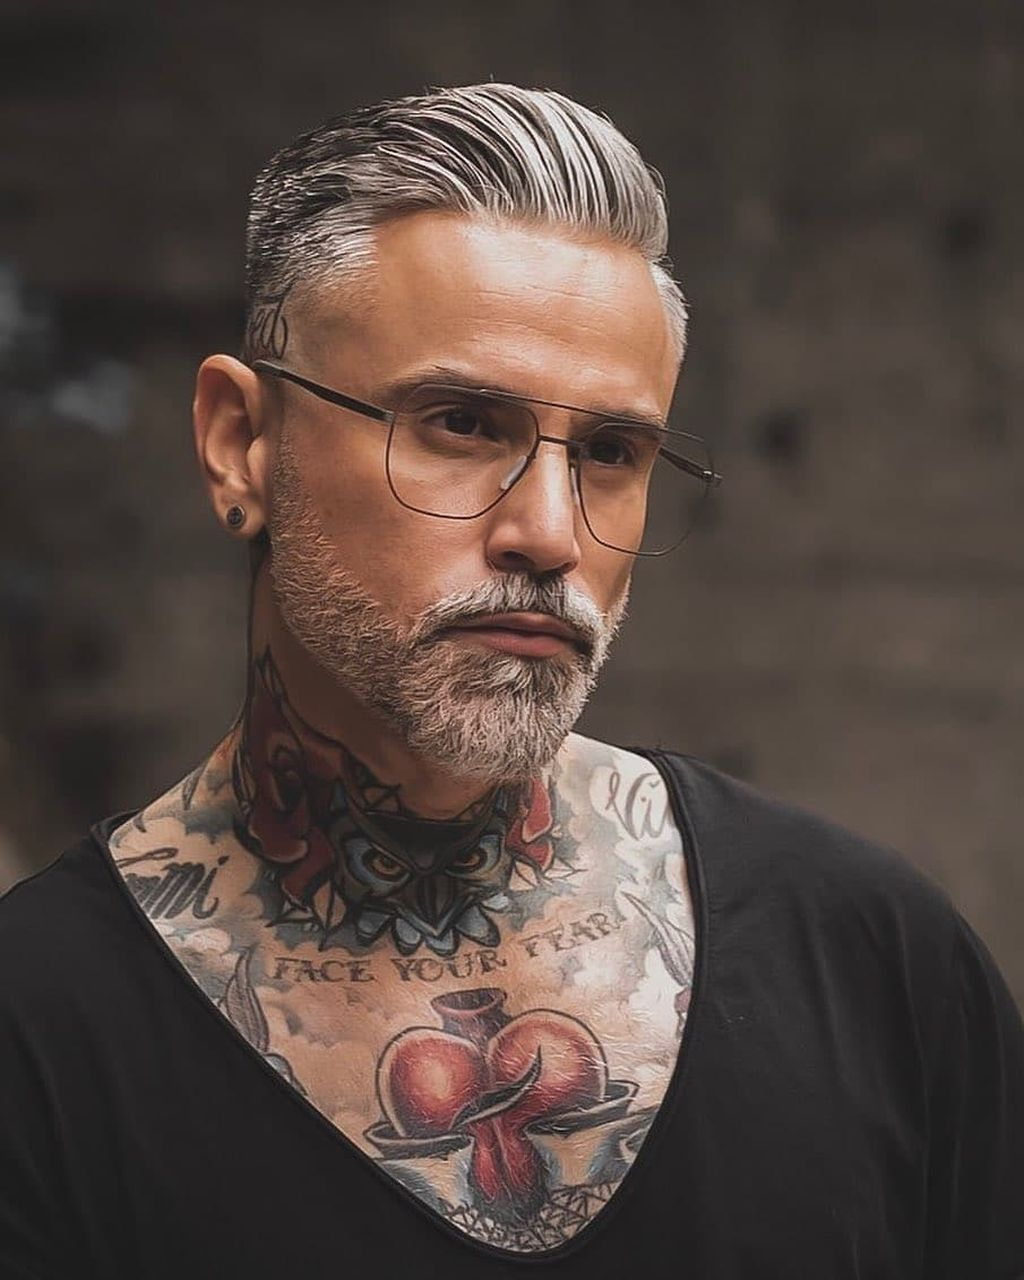 40+ Awesome Gray Haired And Beard Men Ideas To Try Asap in